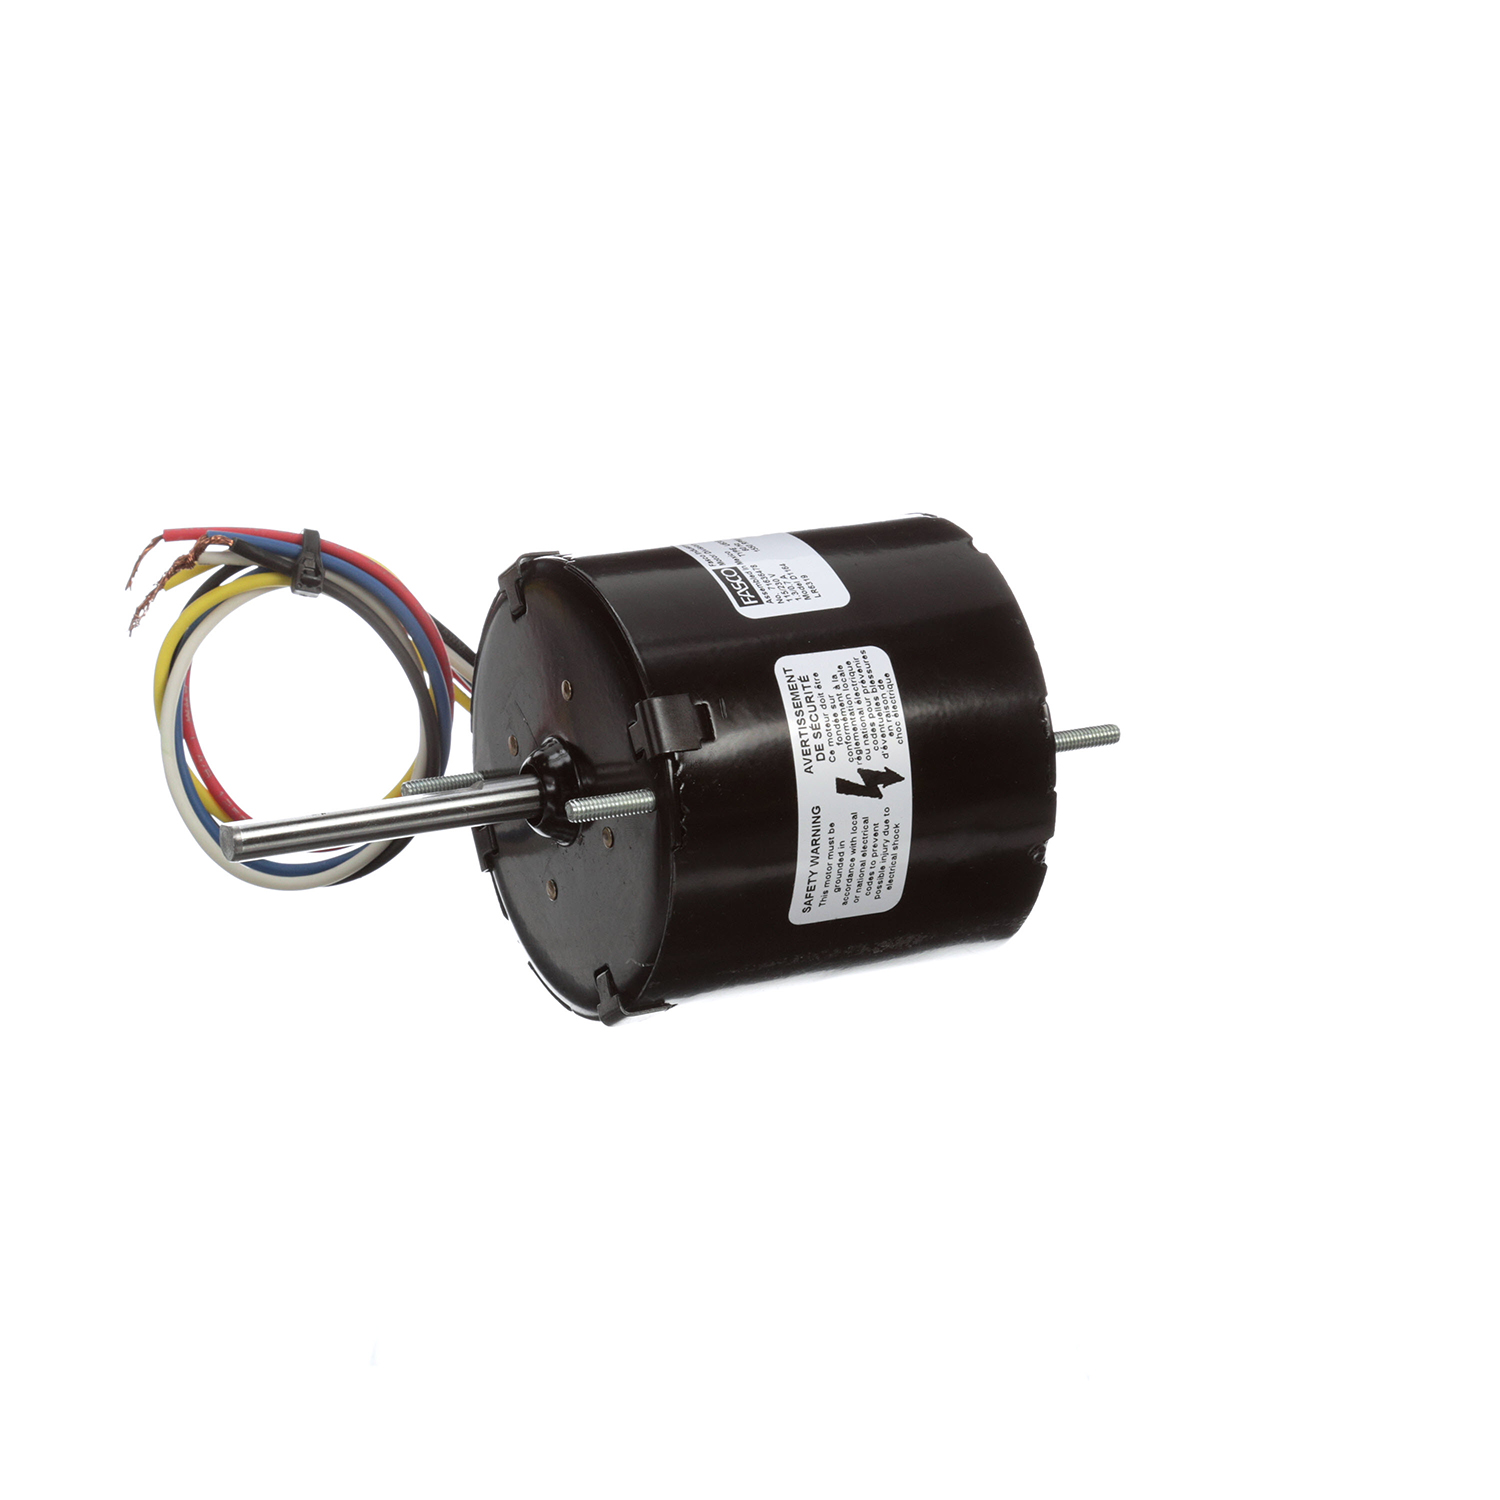 3.3 Inch Diameter Motor 1550 RPM 115/230 Volts